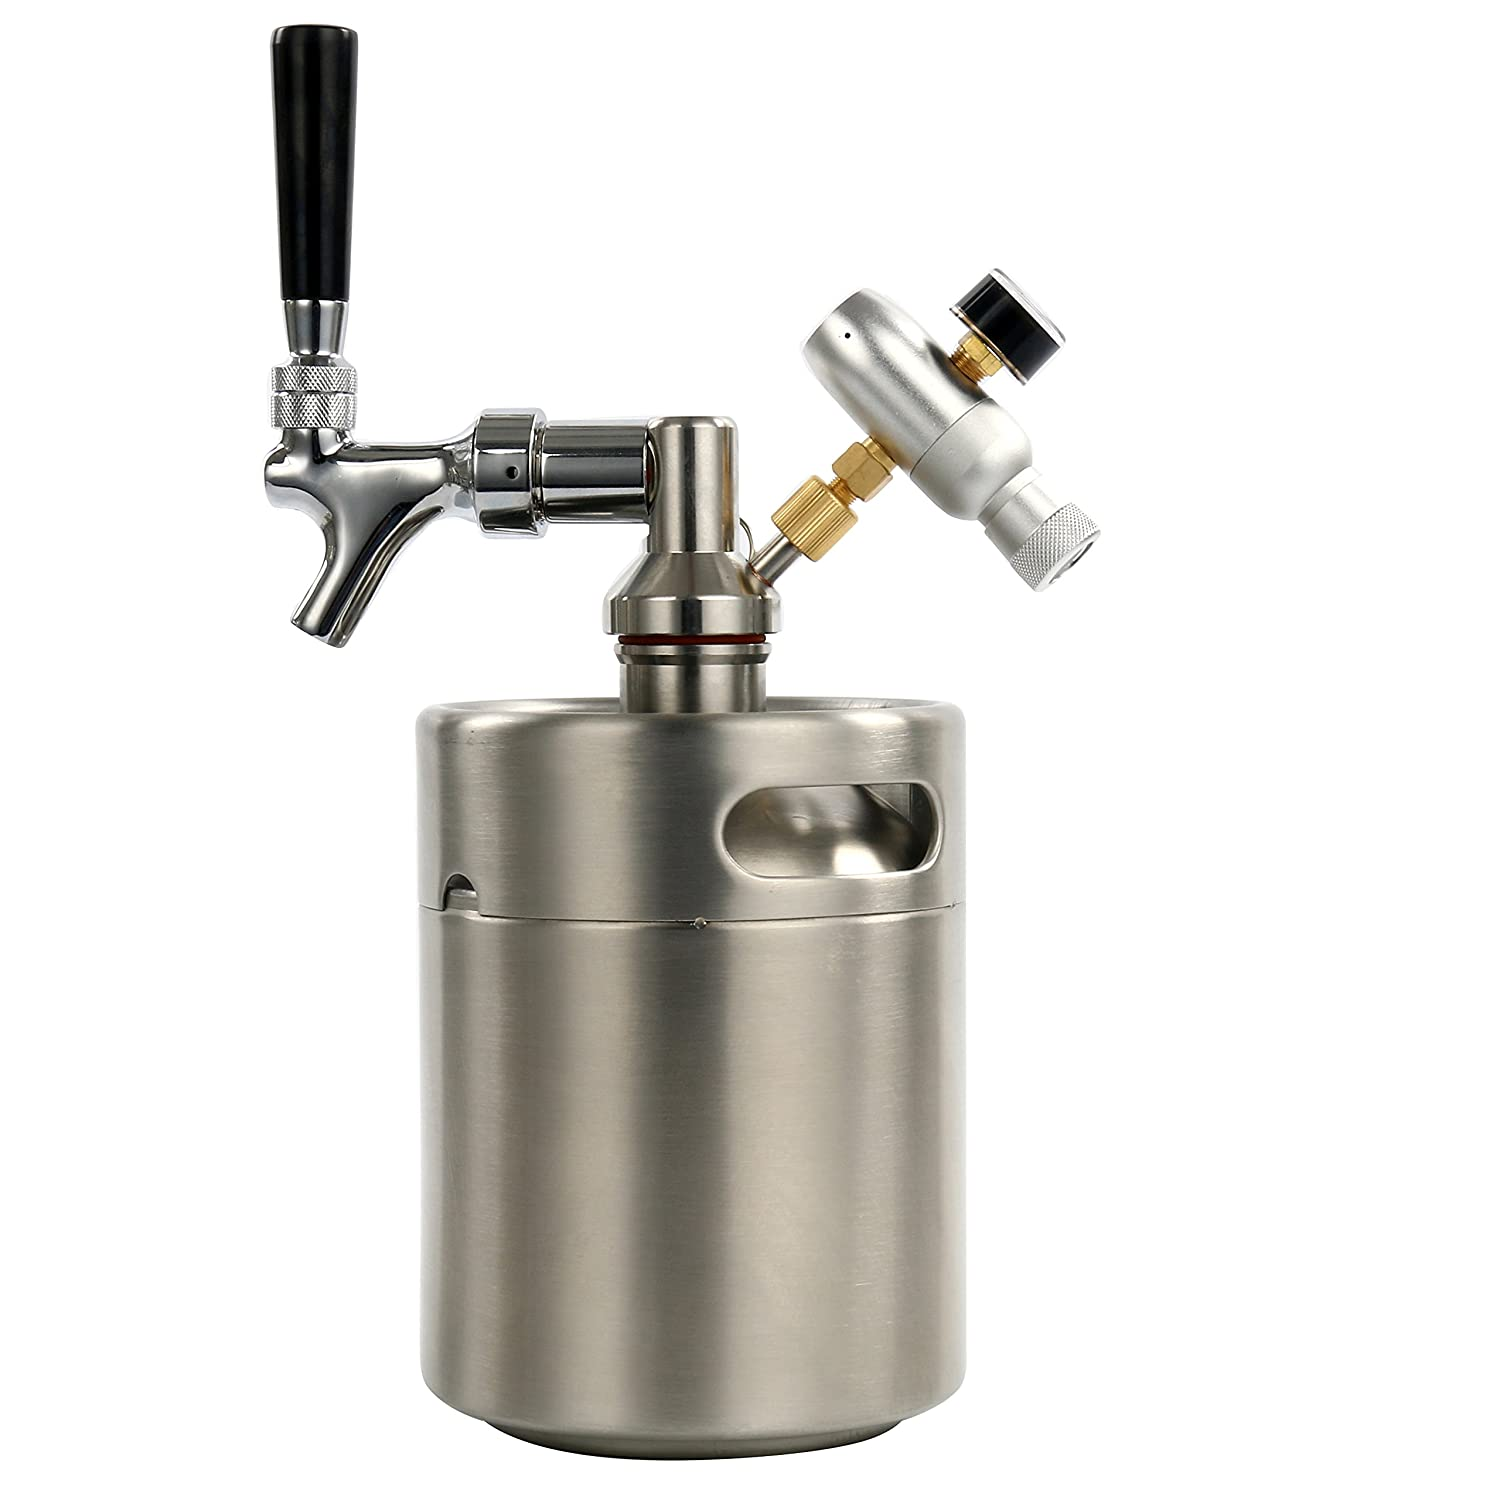 YaeBrew 64 Ounce Homebrew Keg System Kit for Home Brew Beer - with a Beer Dispensor, Mini CO2 Regulator and a 64 Ounce Stainless Steel Keg